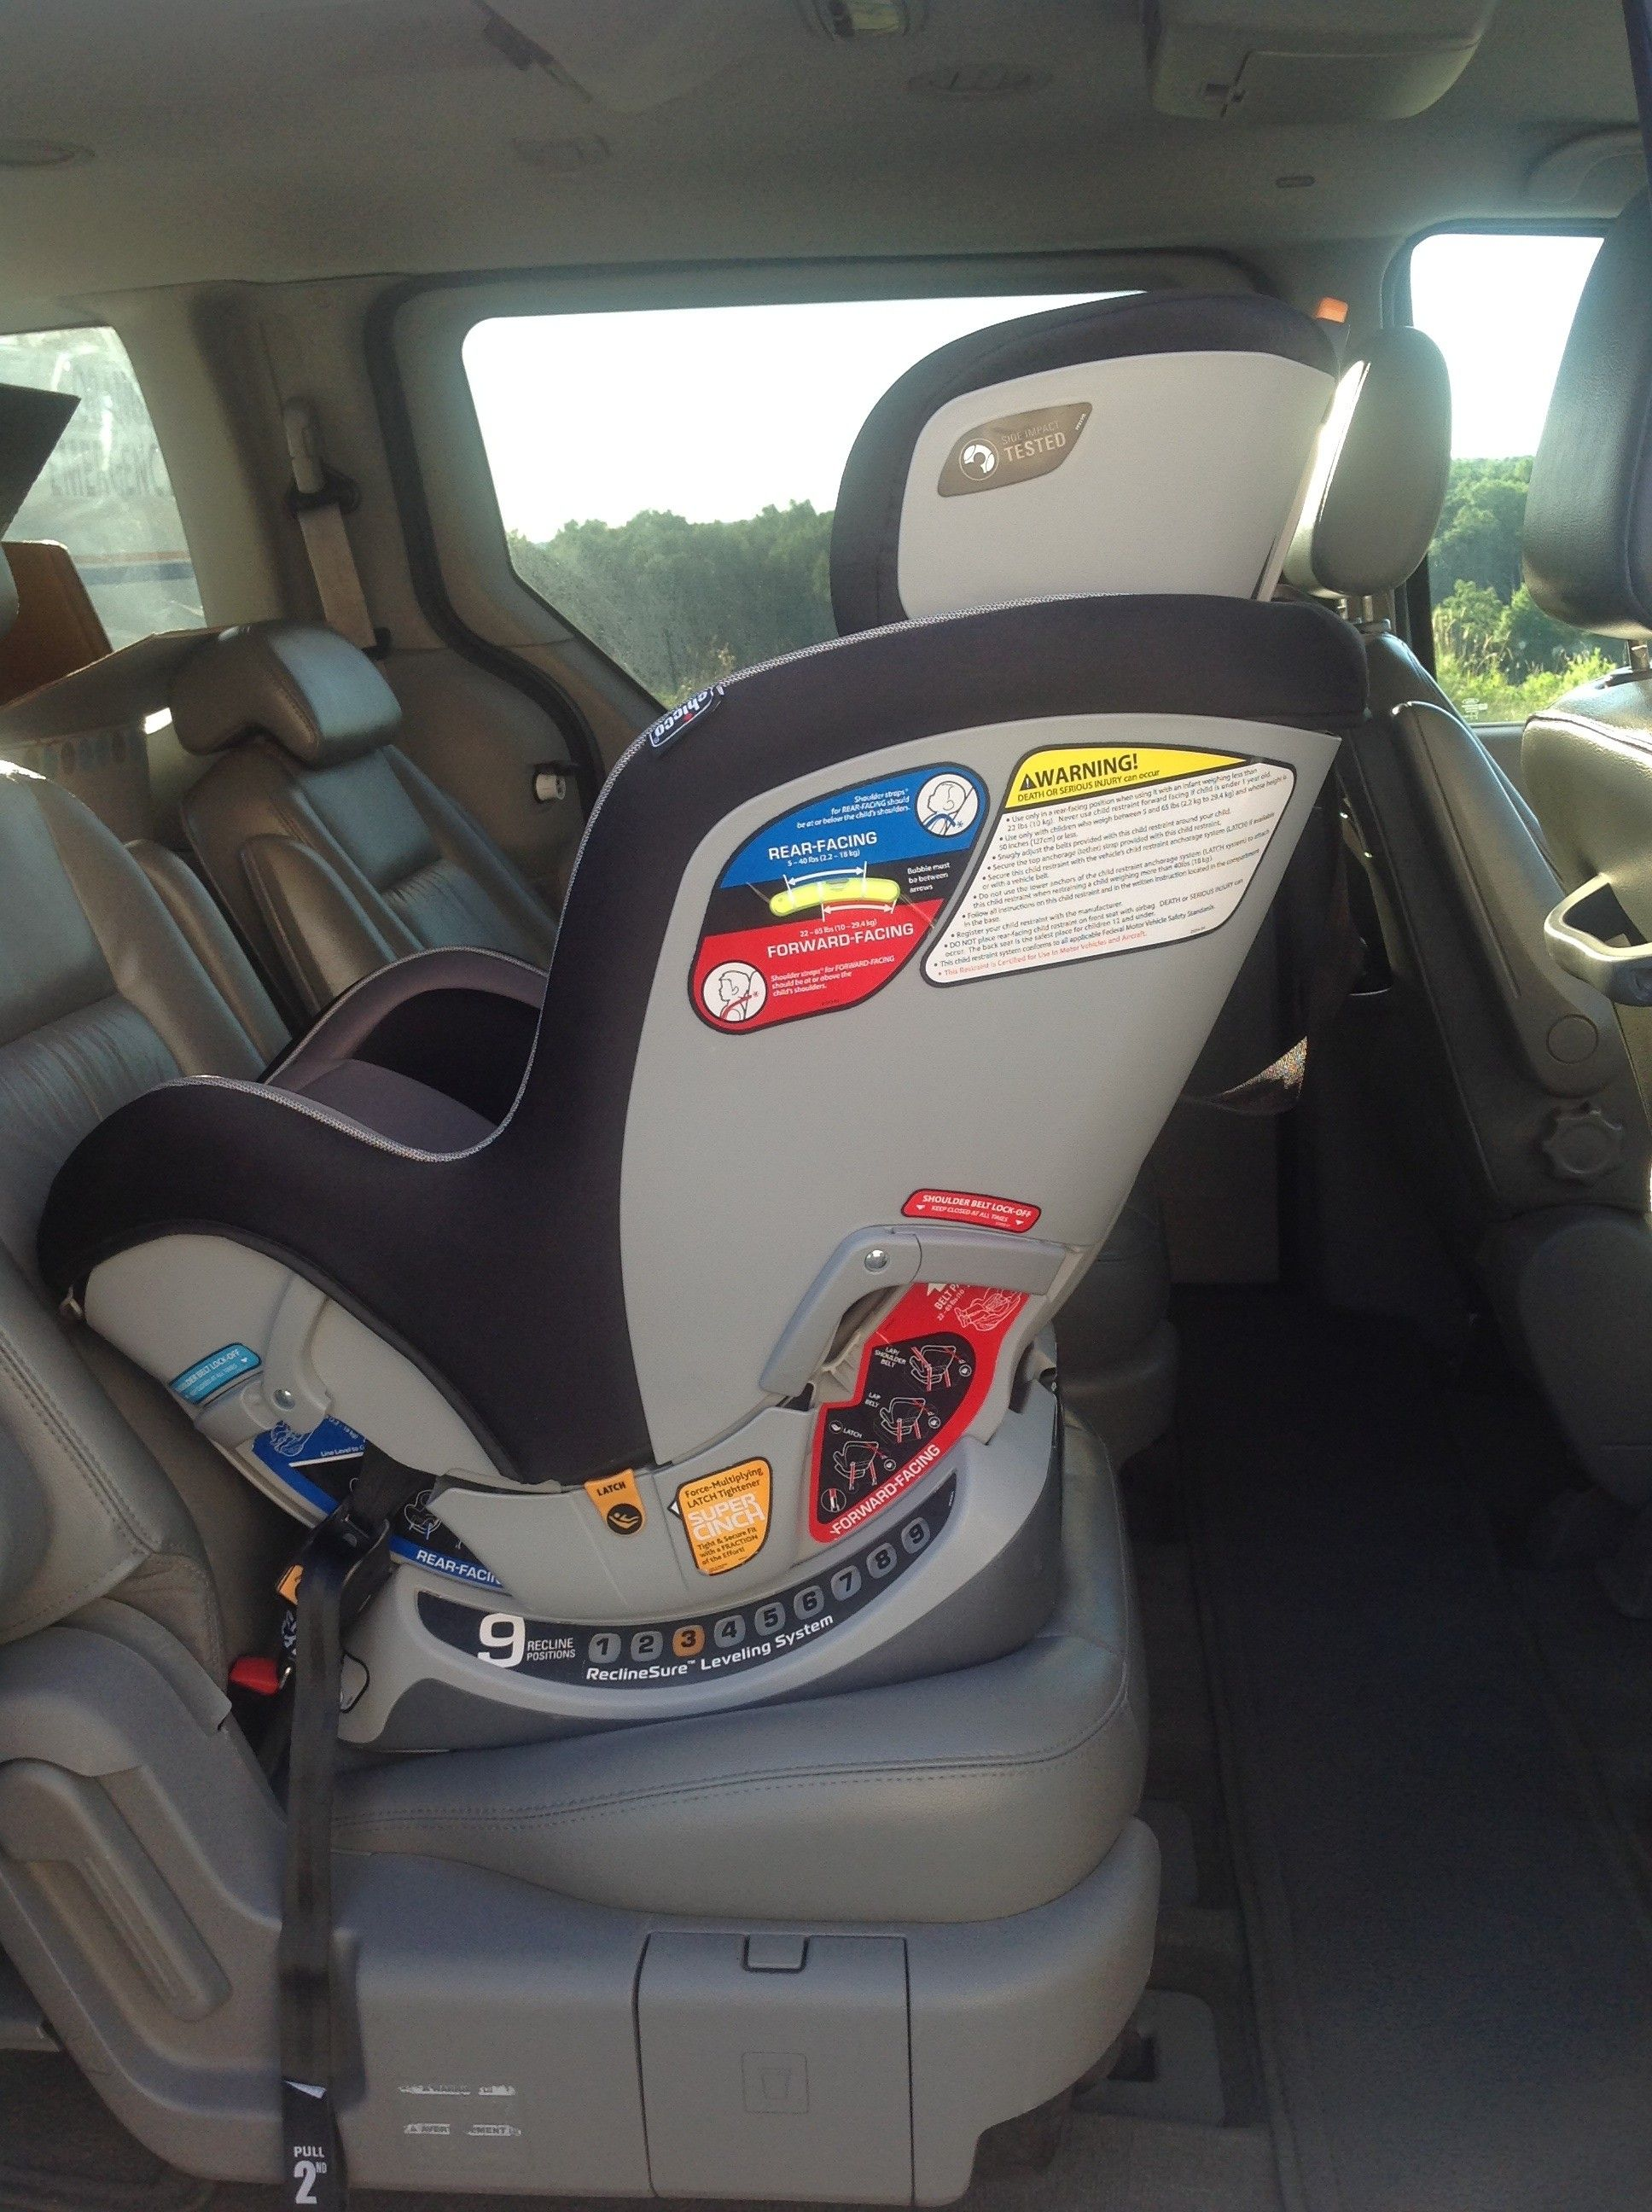 Best Rear Facing Car Seat For Small Back My Pins